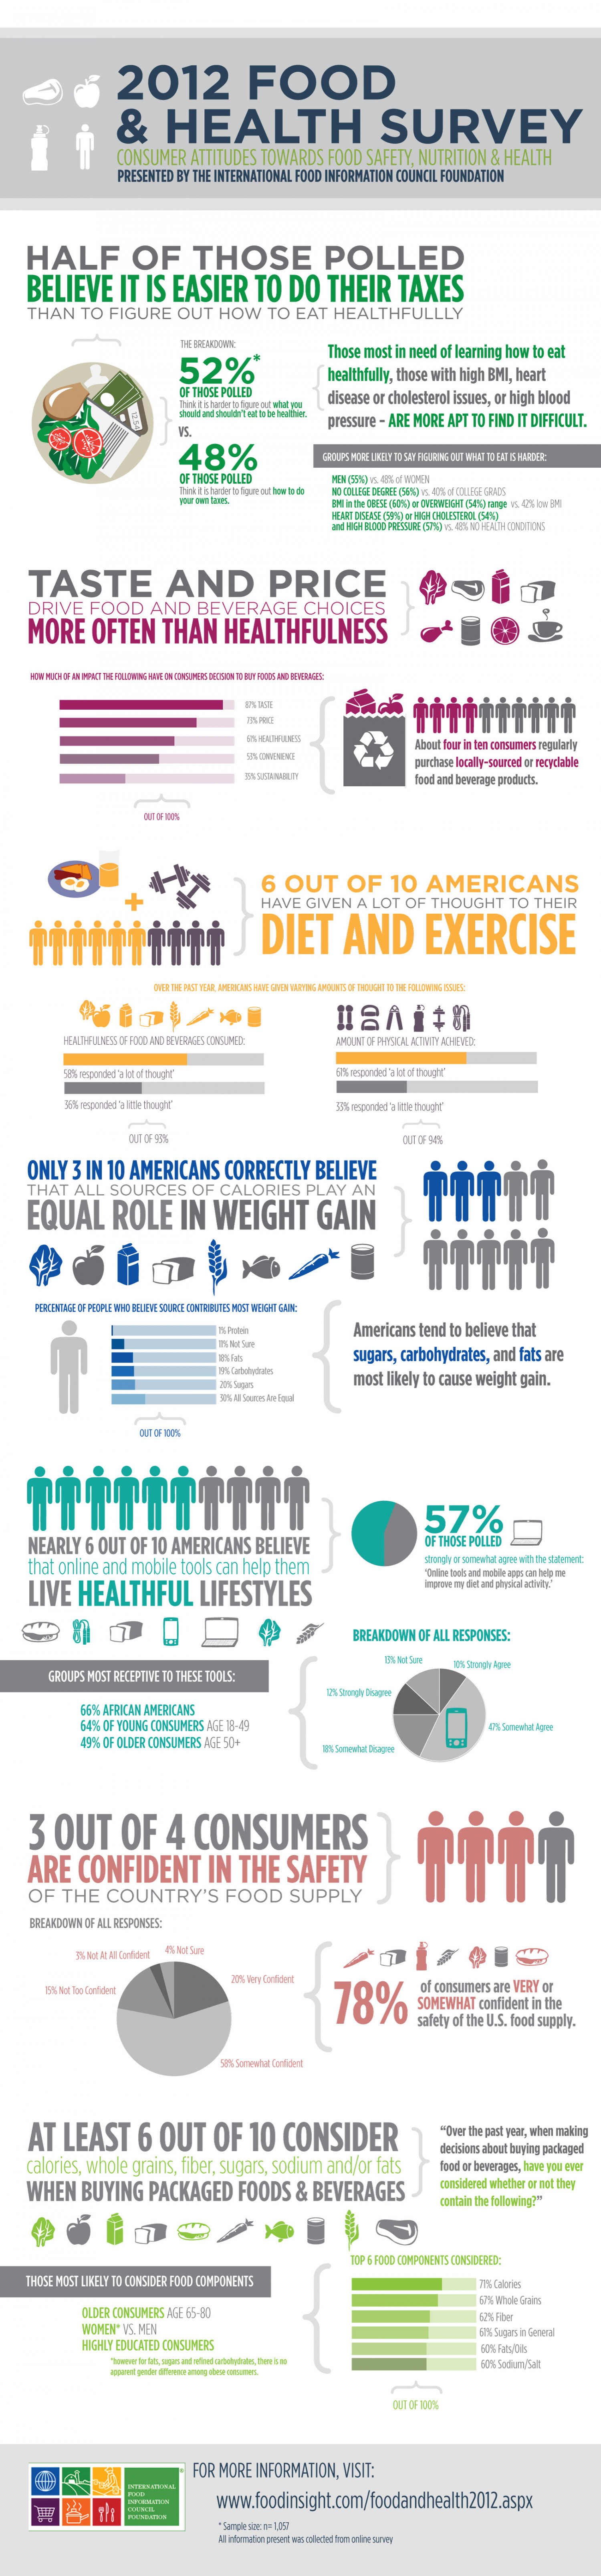 IFIC Food & Health Survey Infographic